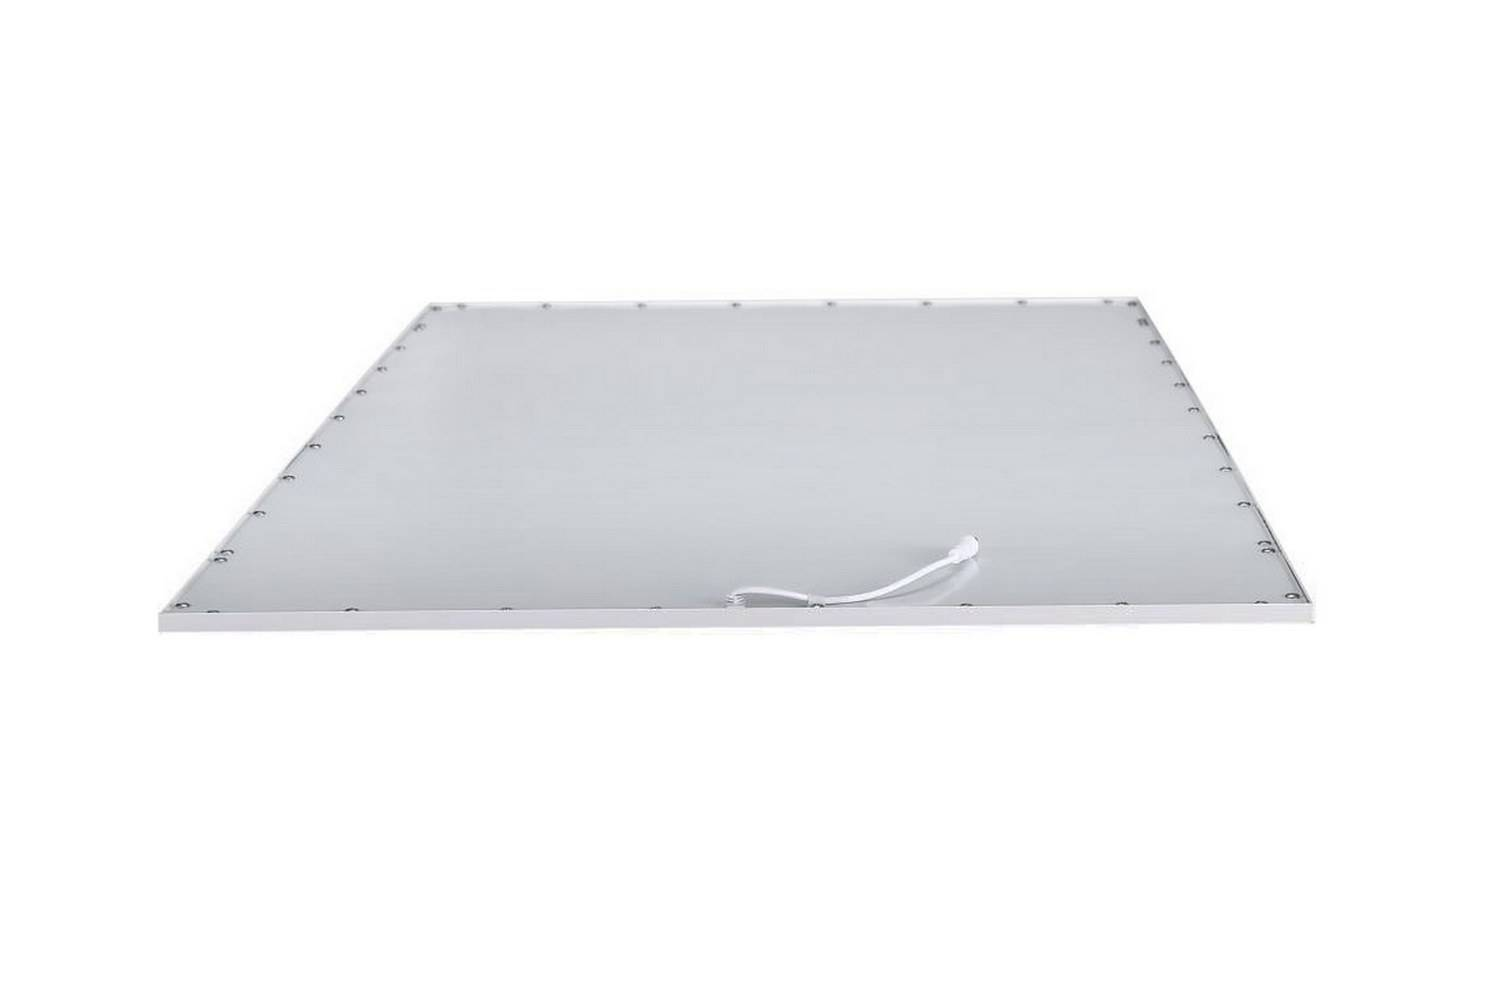 LED panel 60x120 edge-lit panel 600x1200 ultra-thin led flat panel light Europe UK CE CB OHS TUV 3